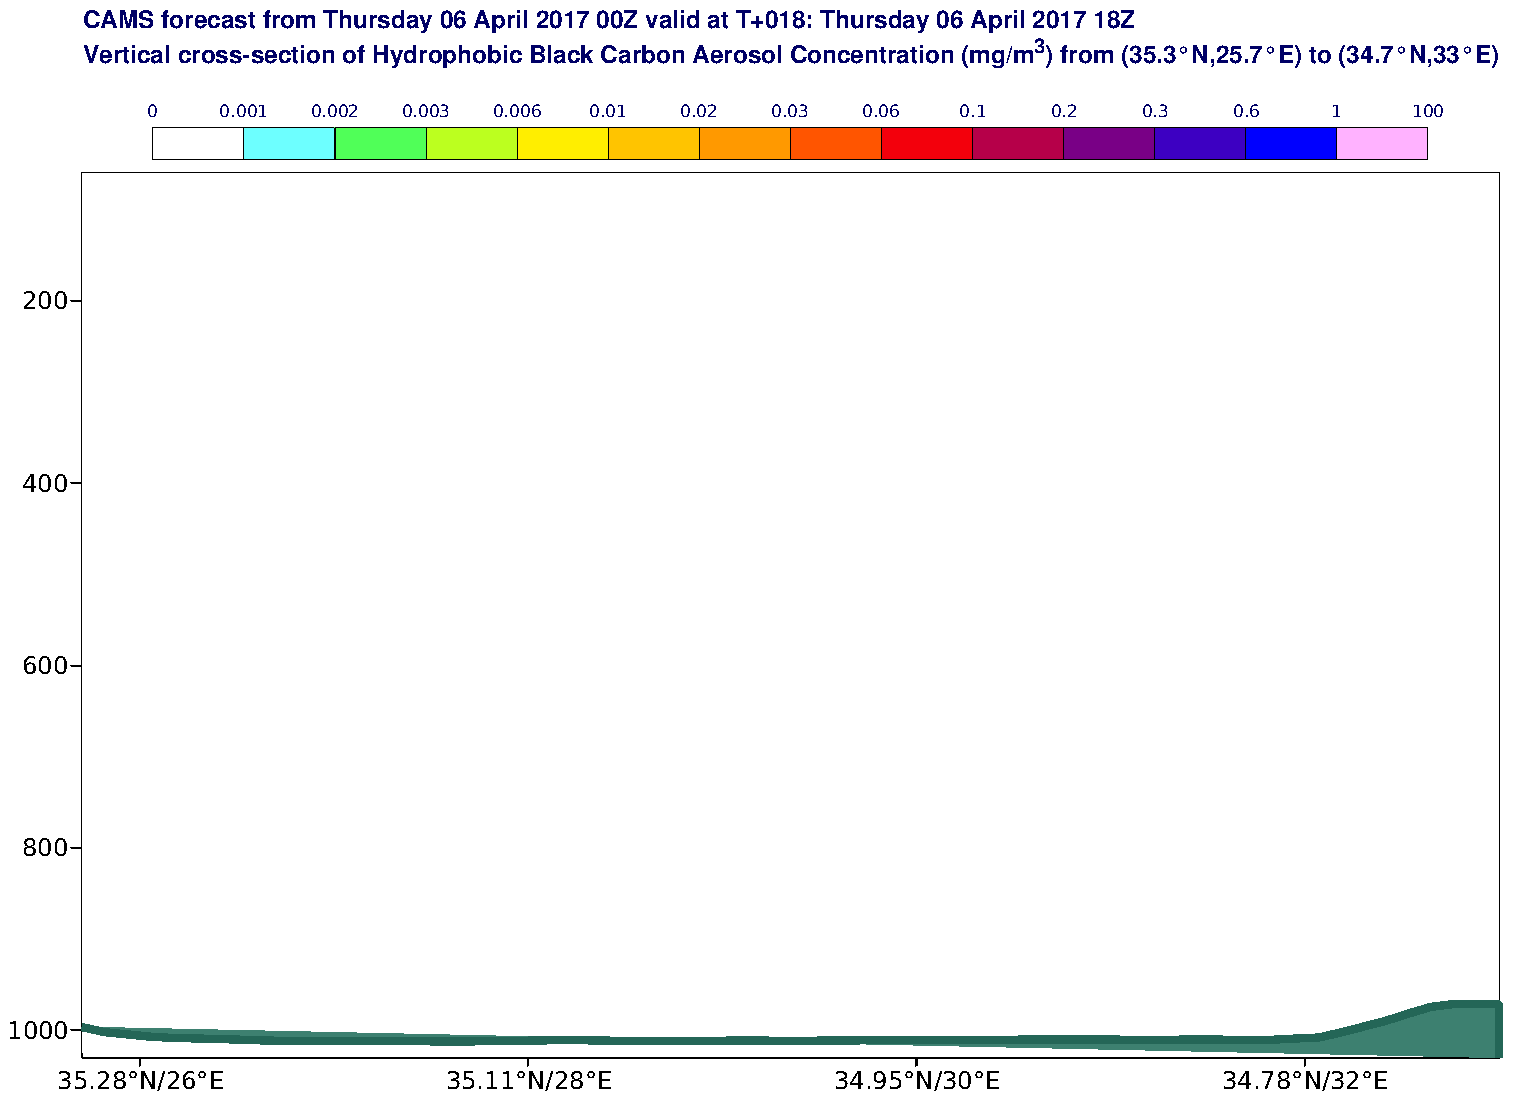 Vertical cross-section of Hydrophobic Black Carbon Aerosol Concentration (mg/m3) valid at T18 - 2017-04-06 18:00